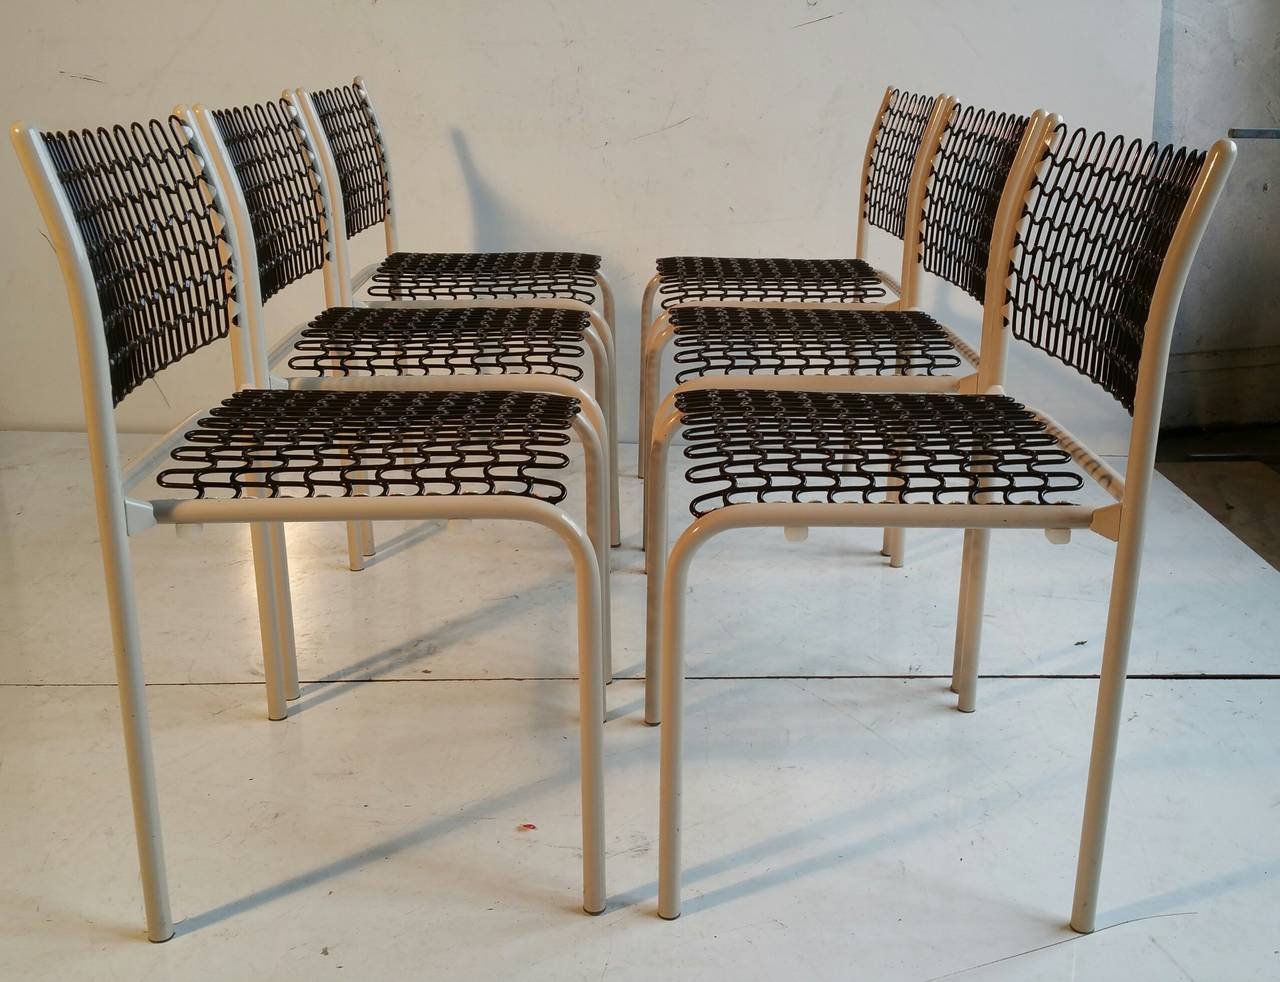 A Set Of Six Sof Tek Chairs Designed By David Rowland For Thonet. These